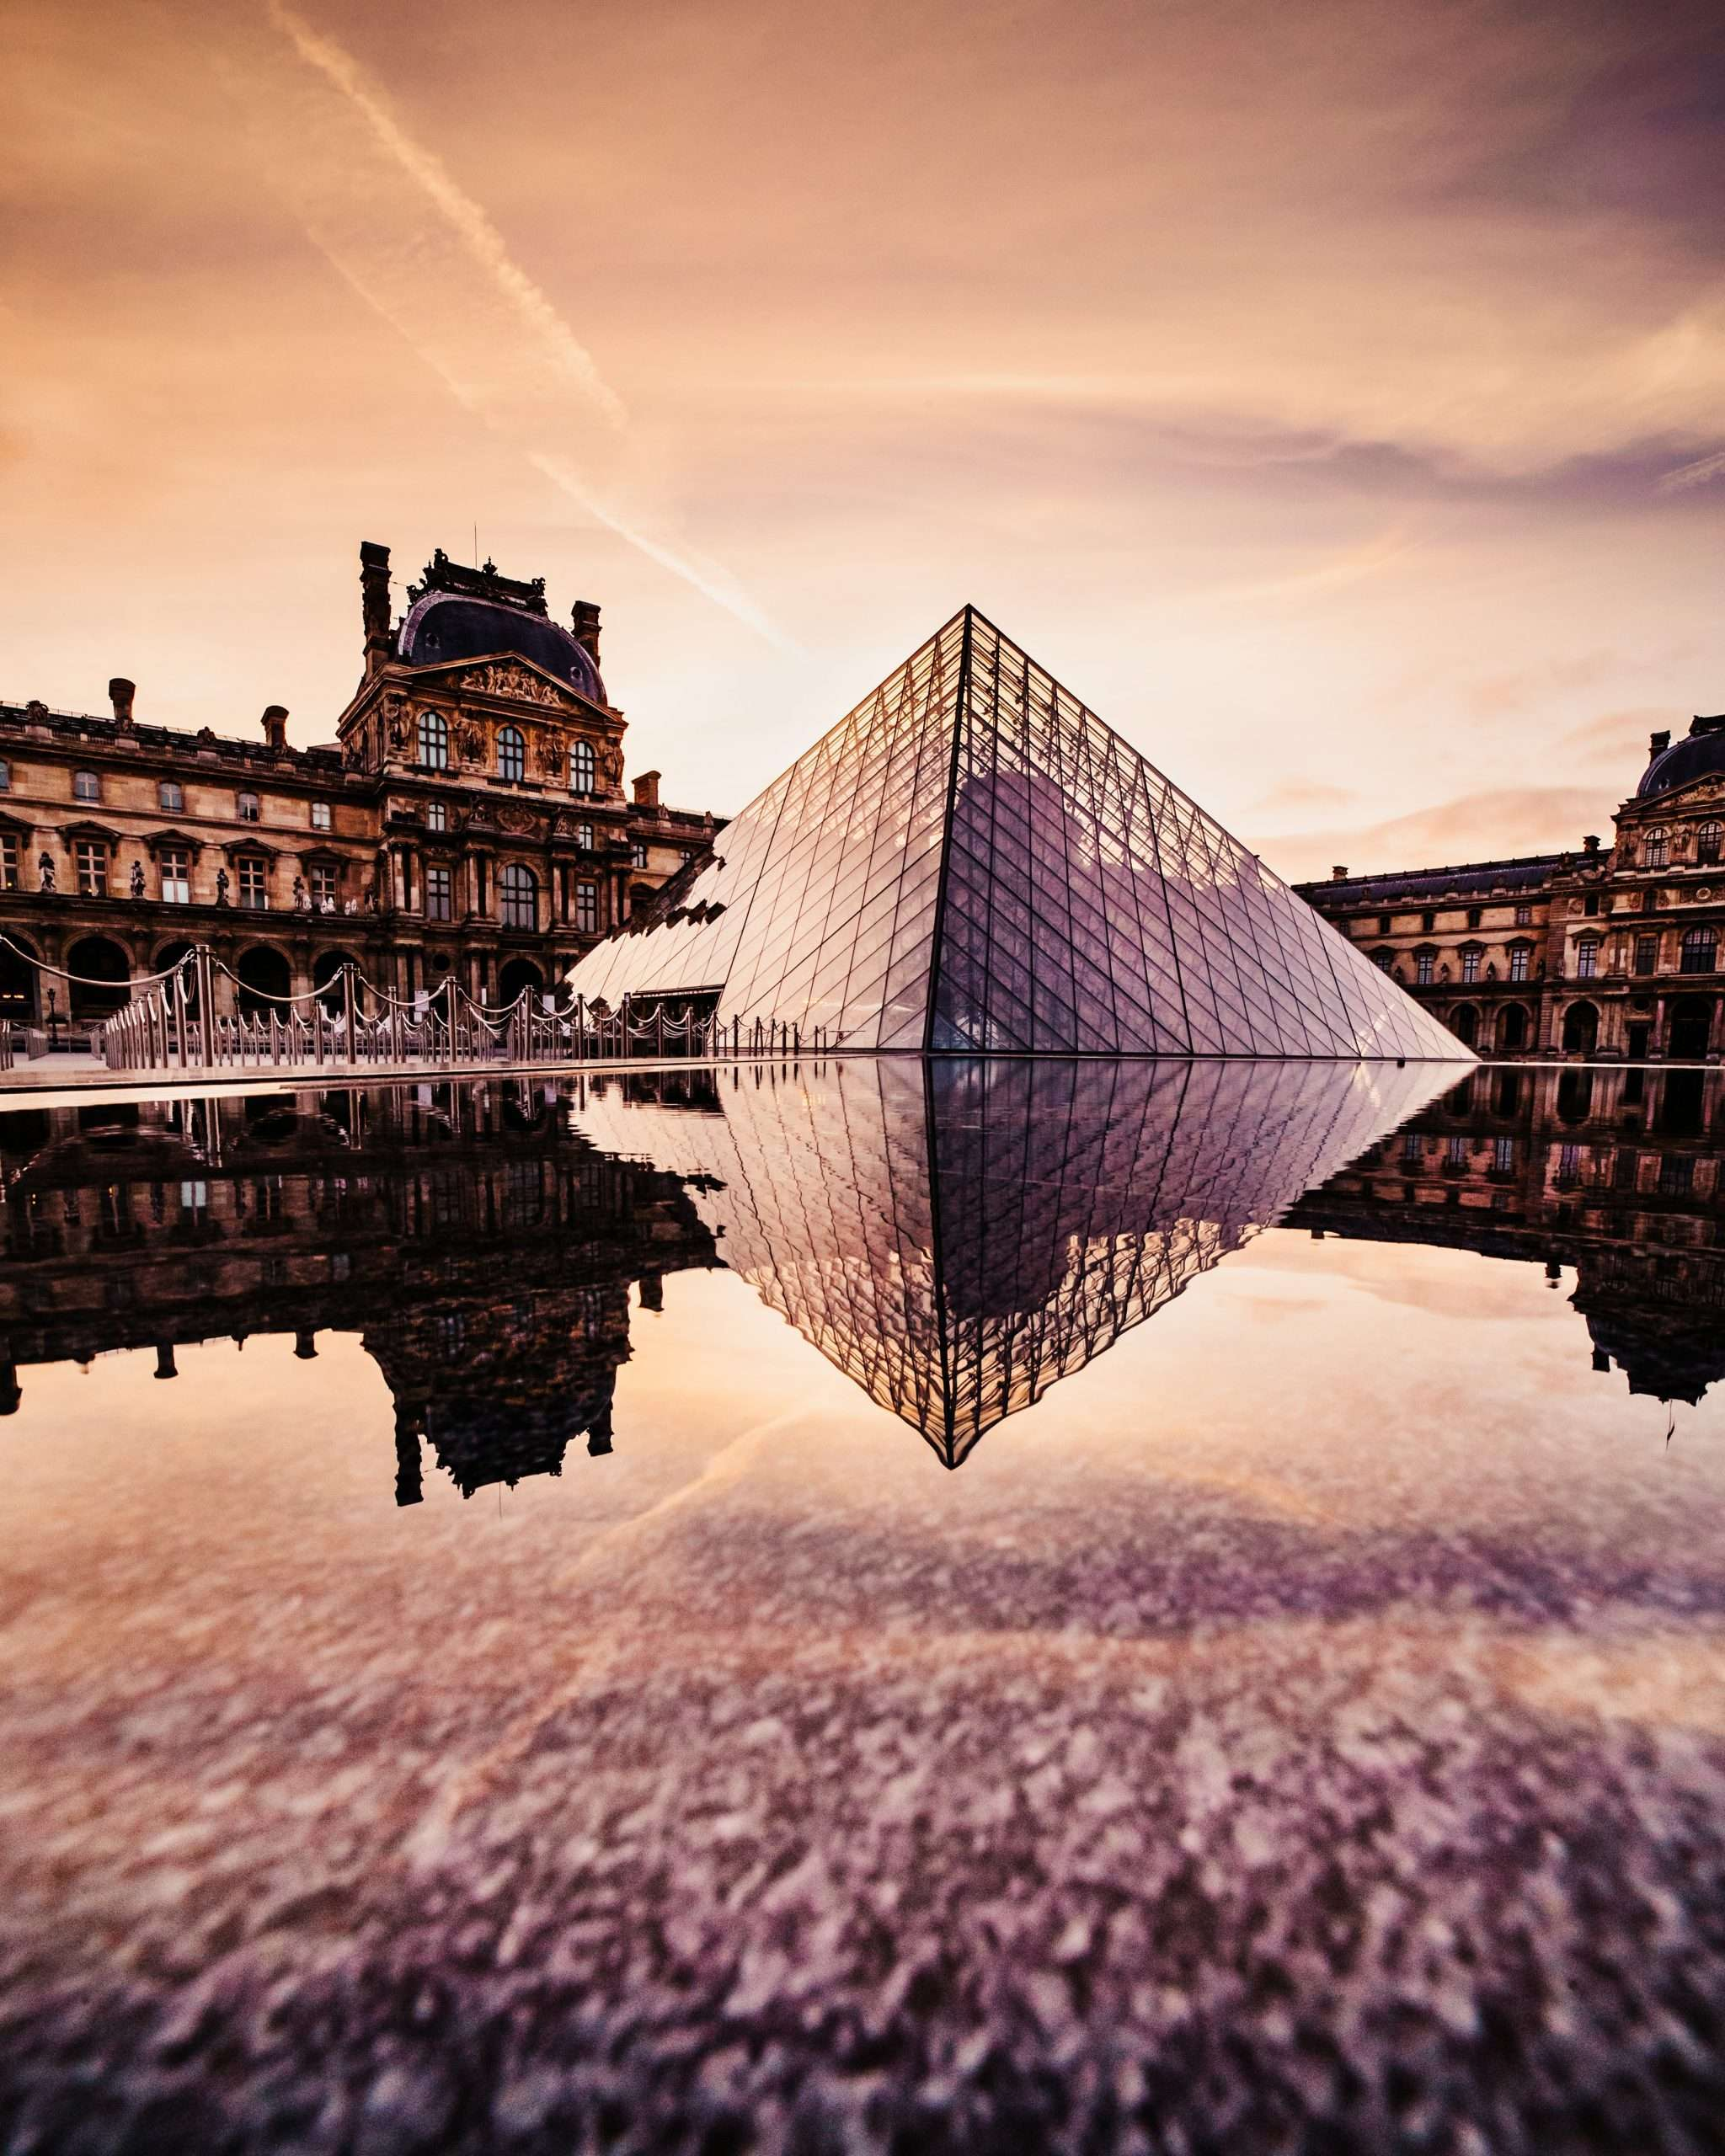 Exterior image of The Louvre museum in Paris, France.